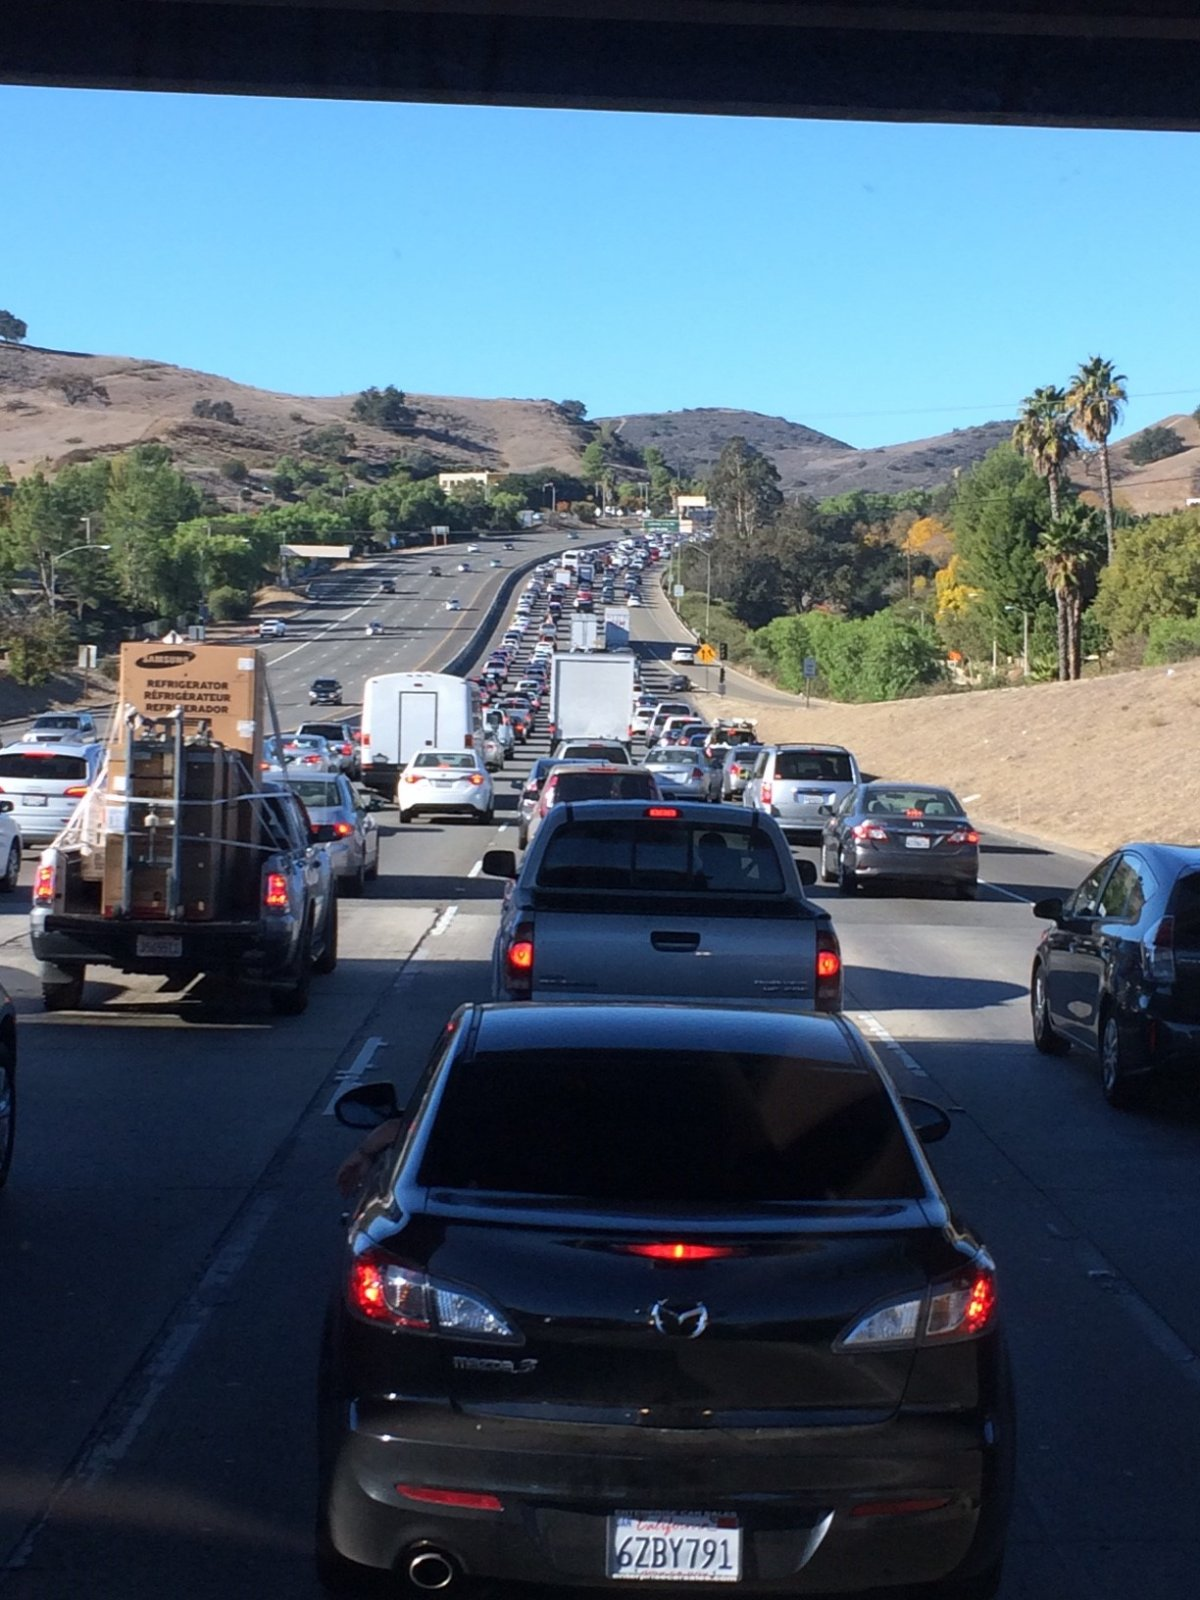 Click image for larger version  Name:traffic.jpg Views:101 Size:271.3 KB ID:112620